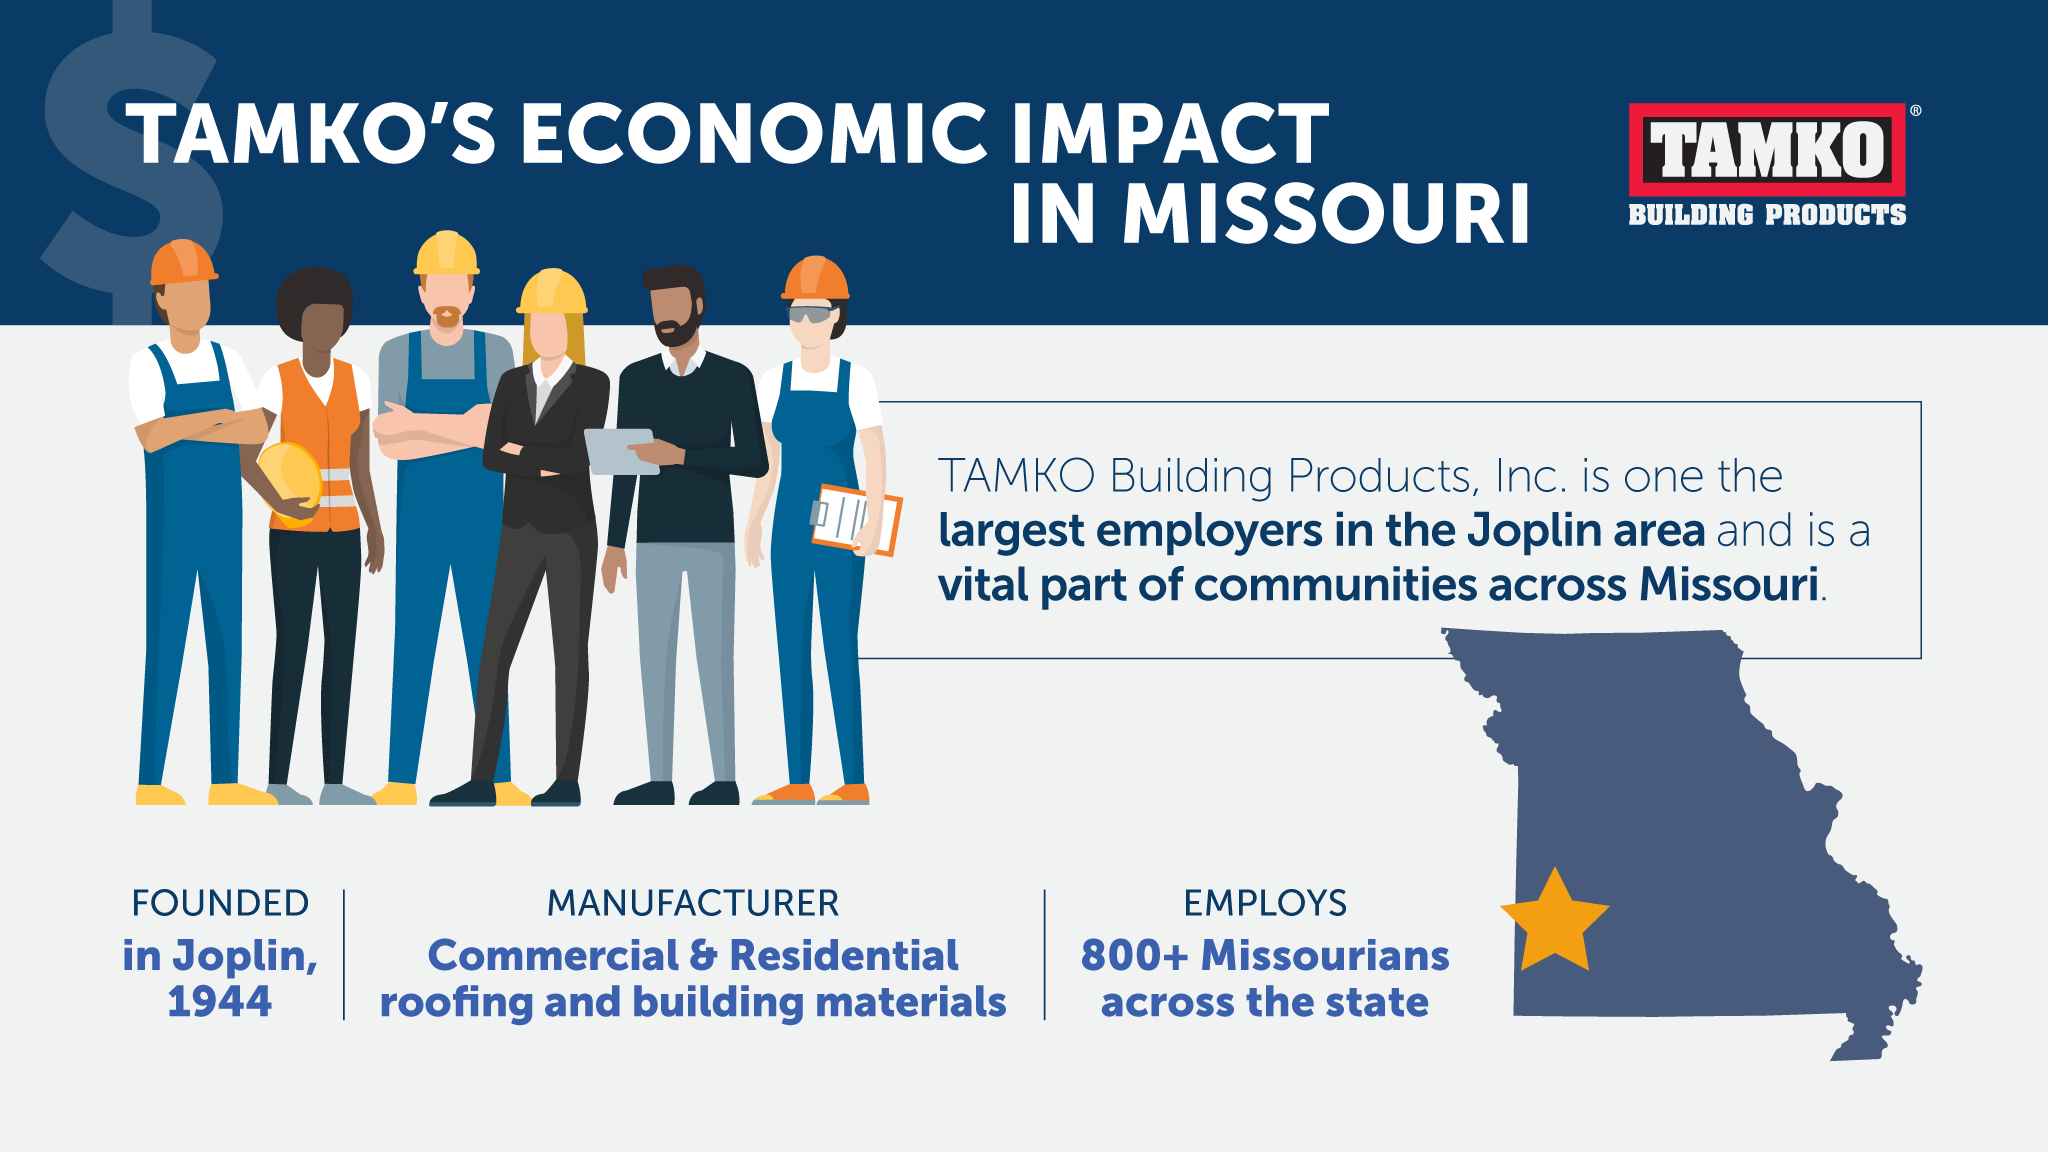 TAMKO - Economic Impact in Missouri